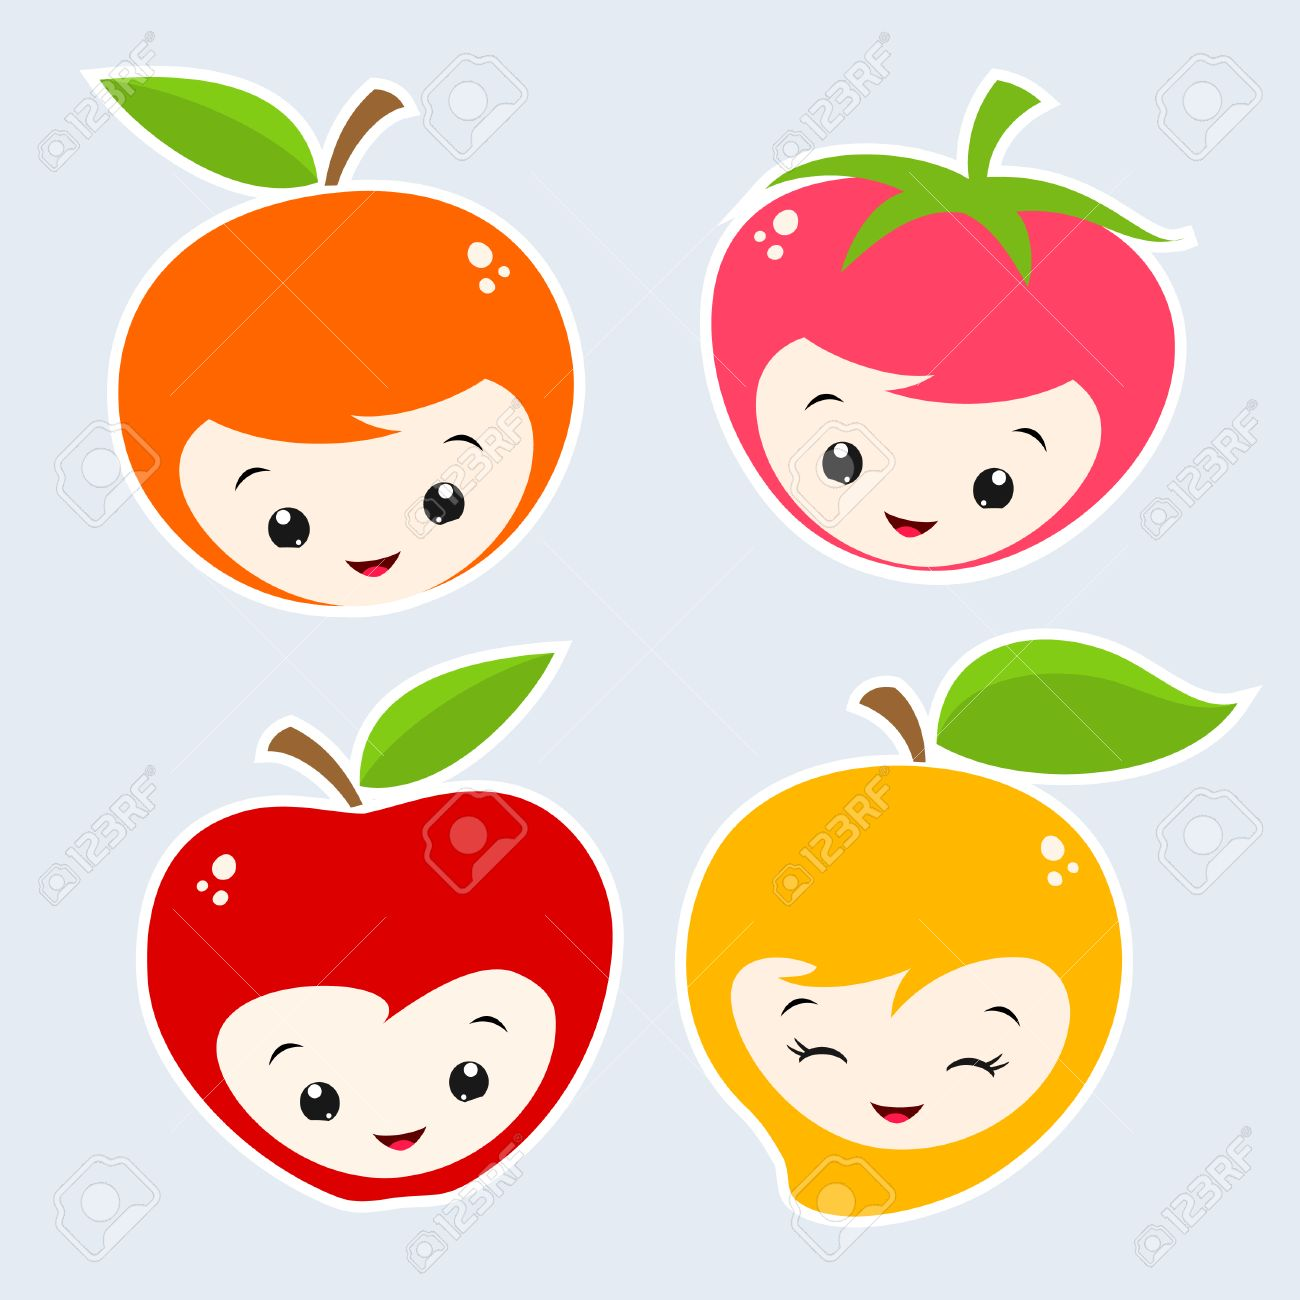 cute cartoon fruit faces royalty free cliparts vectors and stock